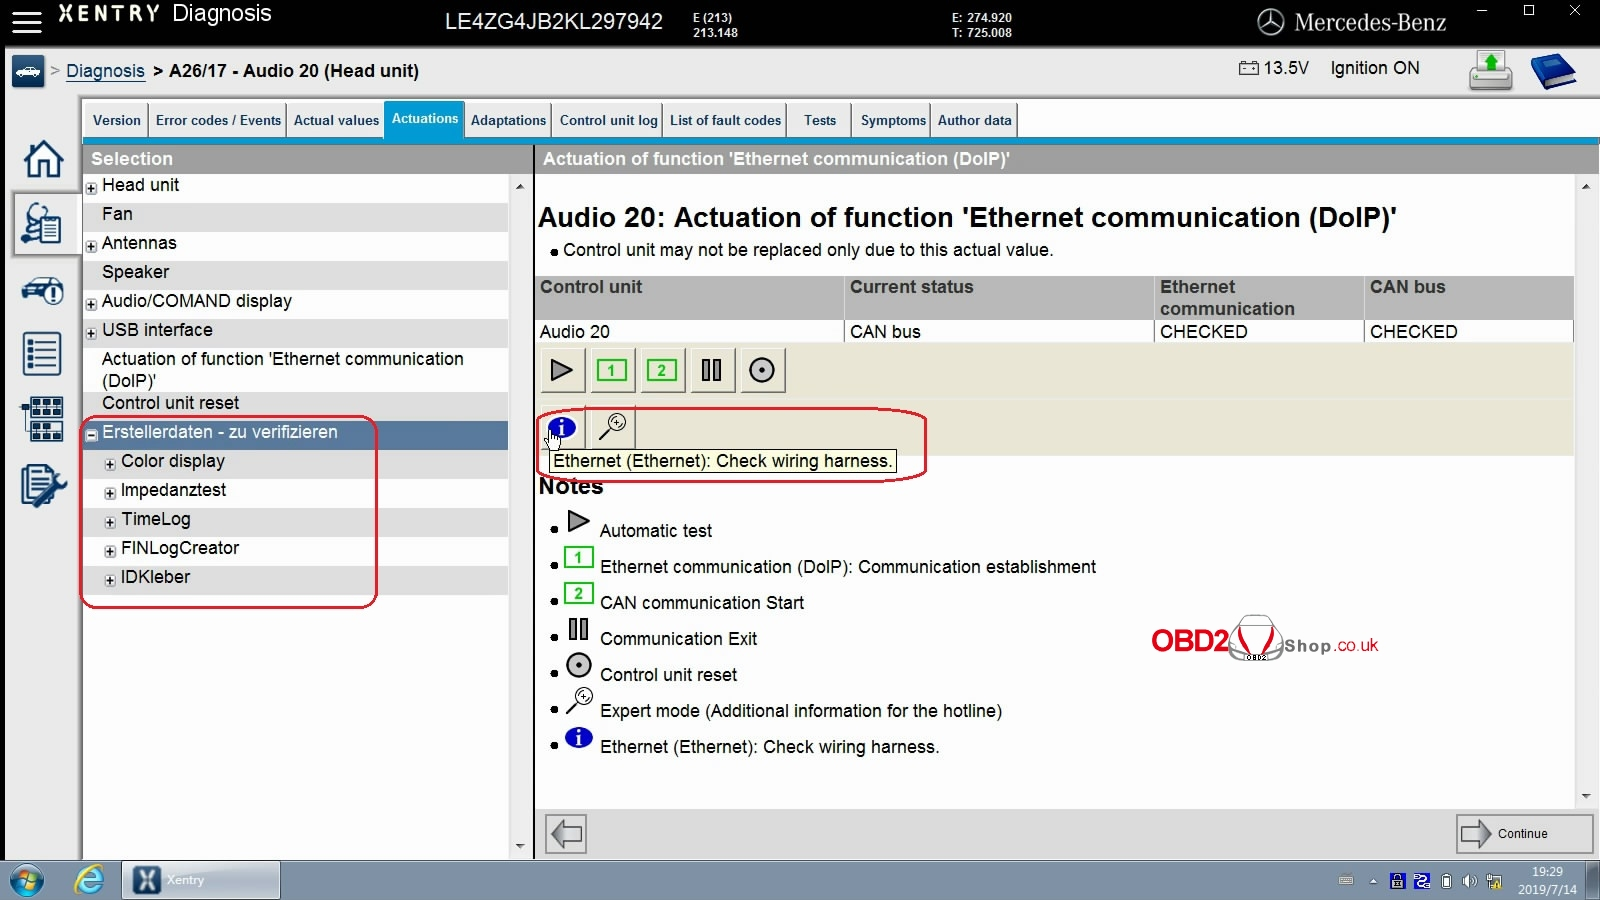 sdc4-plus-xentry-test-actuation-of-function-ethernet-communication-doip-19